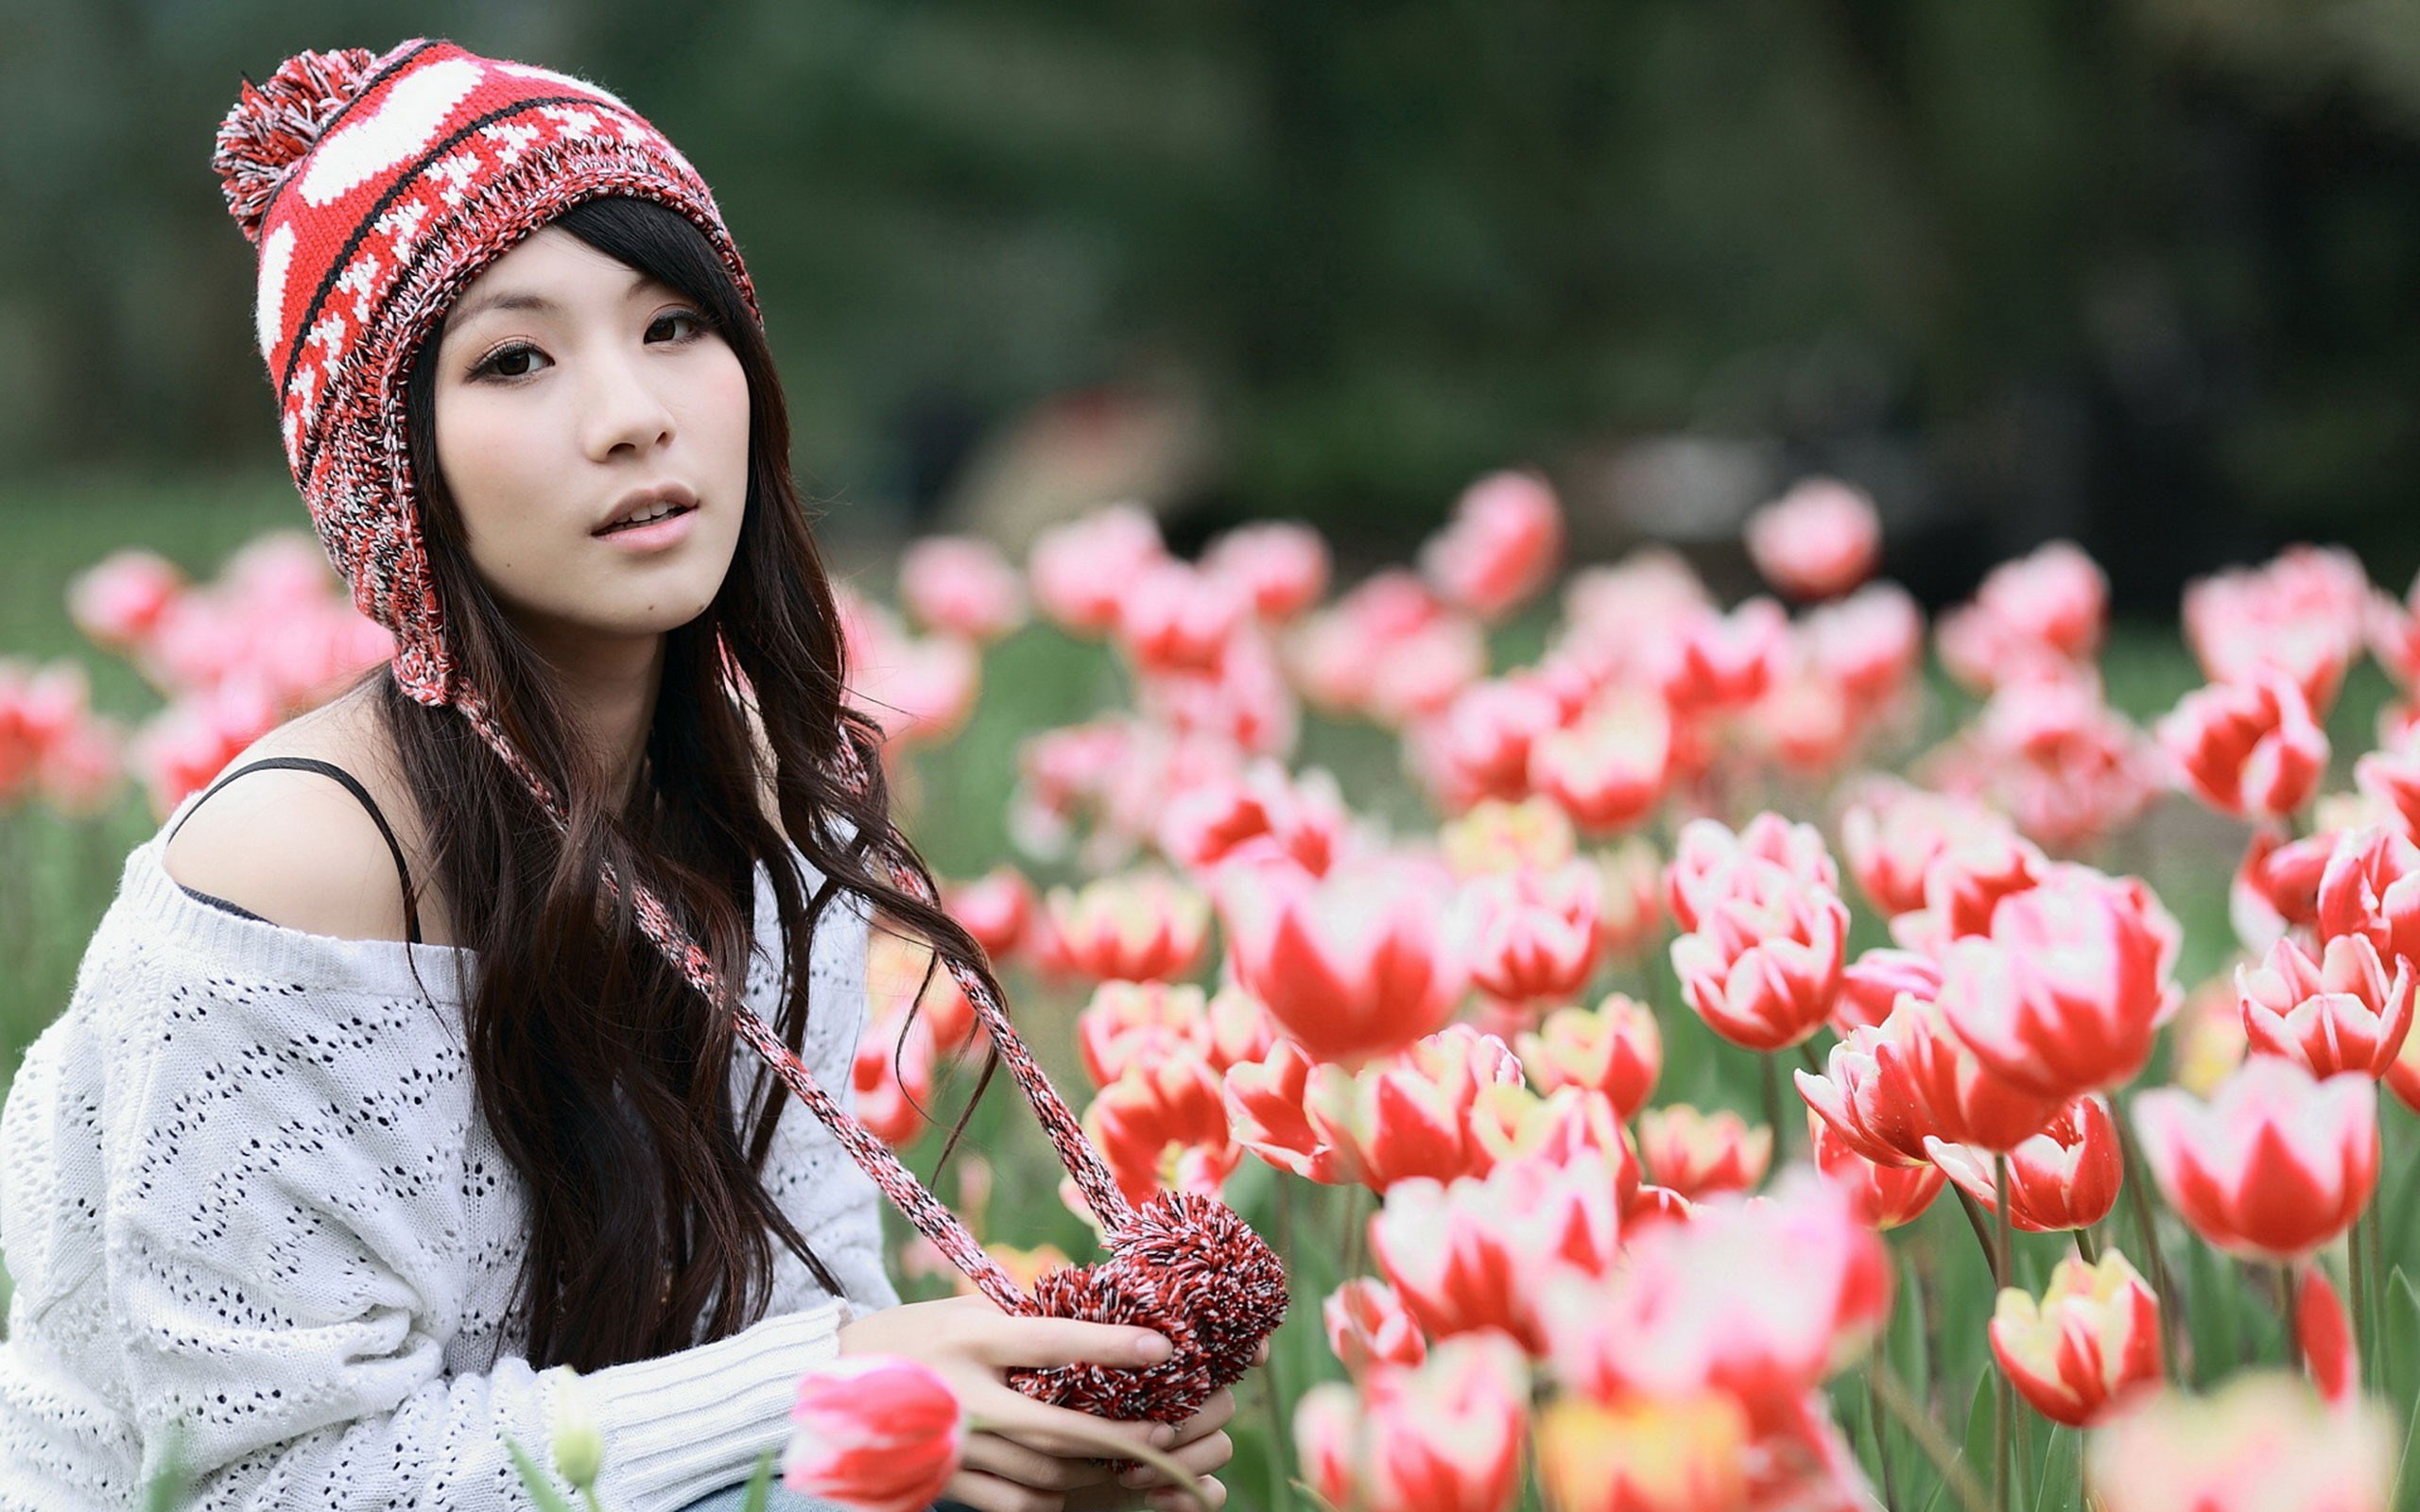 Asian Girl Model Hat Flowers Tulips